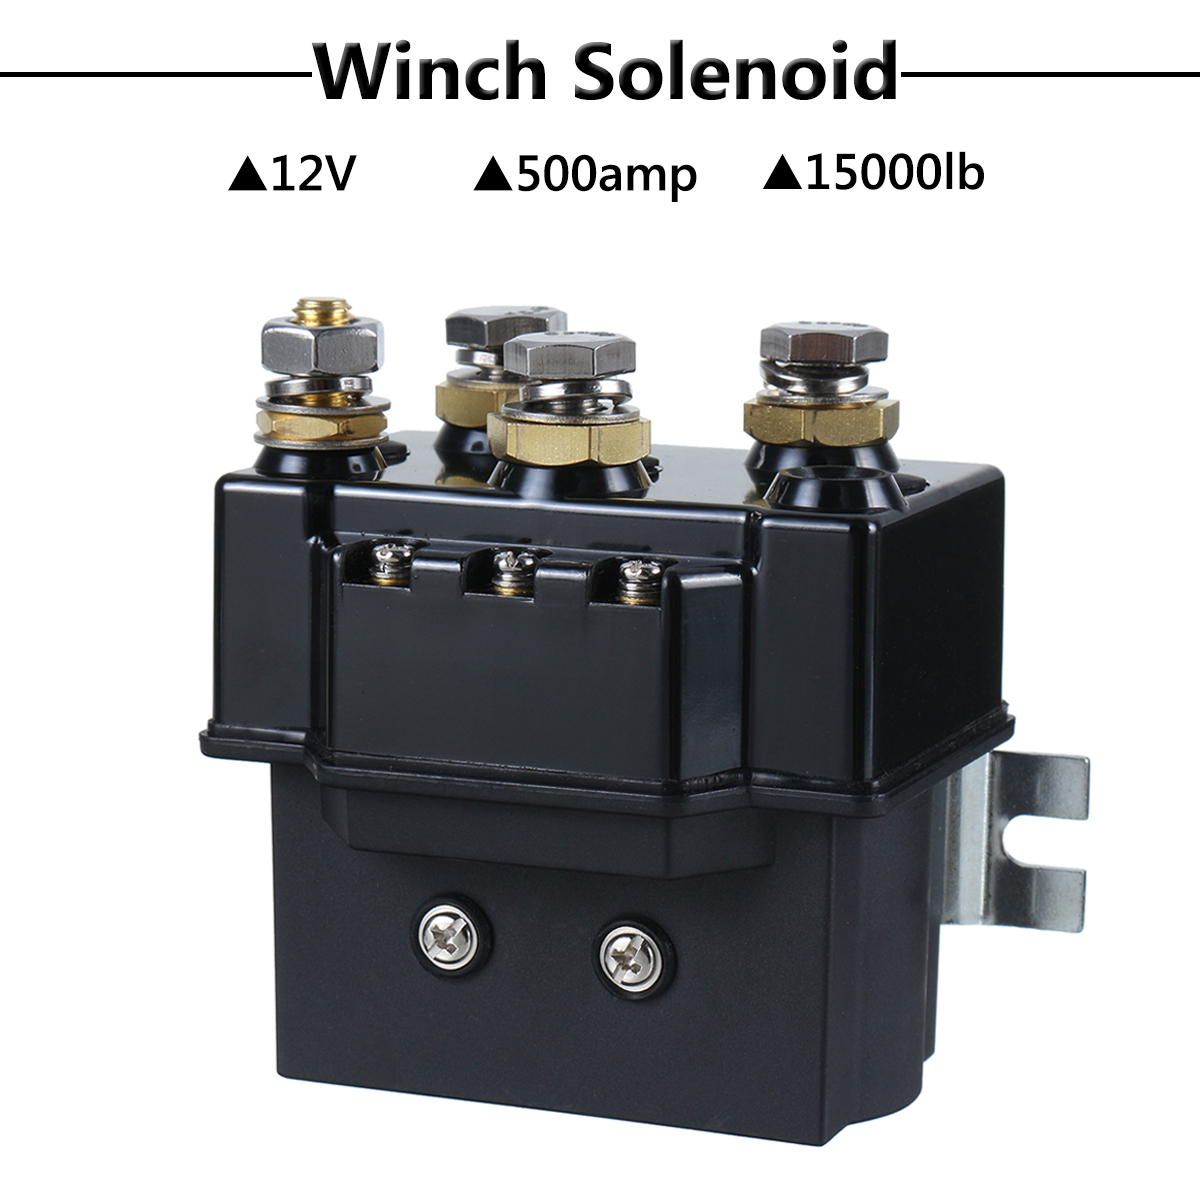 Solenoid control box for winches up to 5000lb with wireless controls